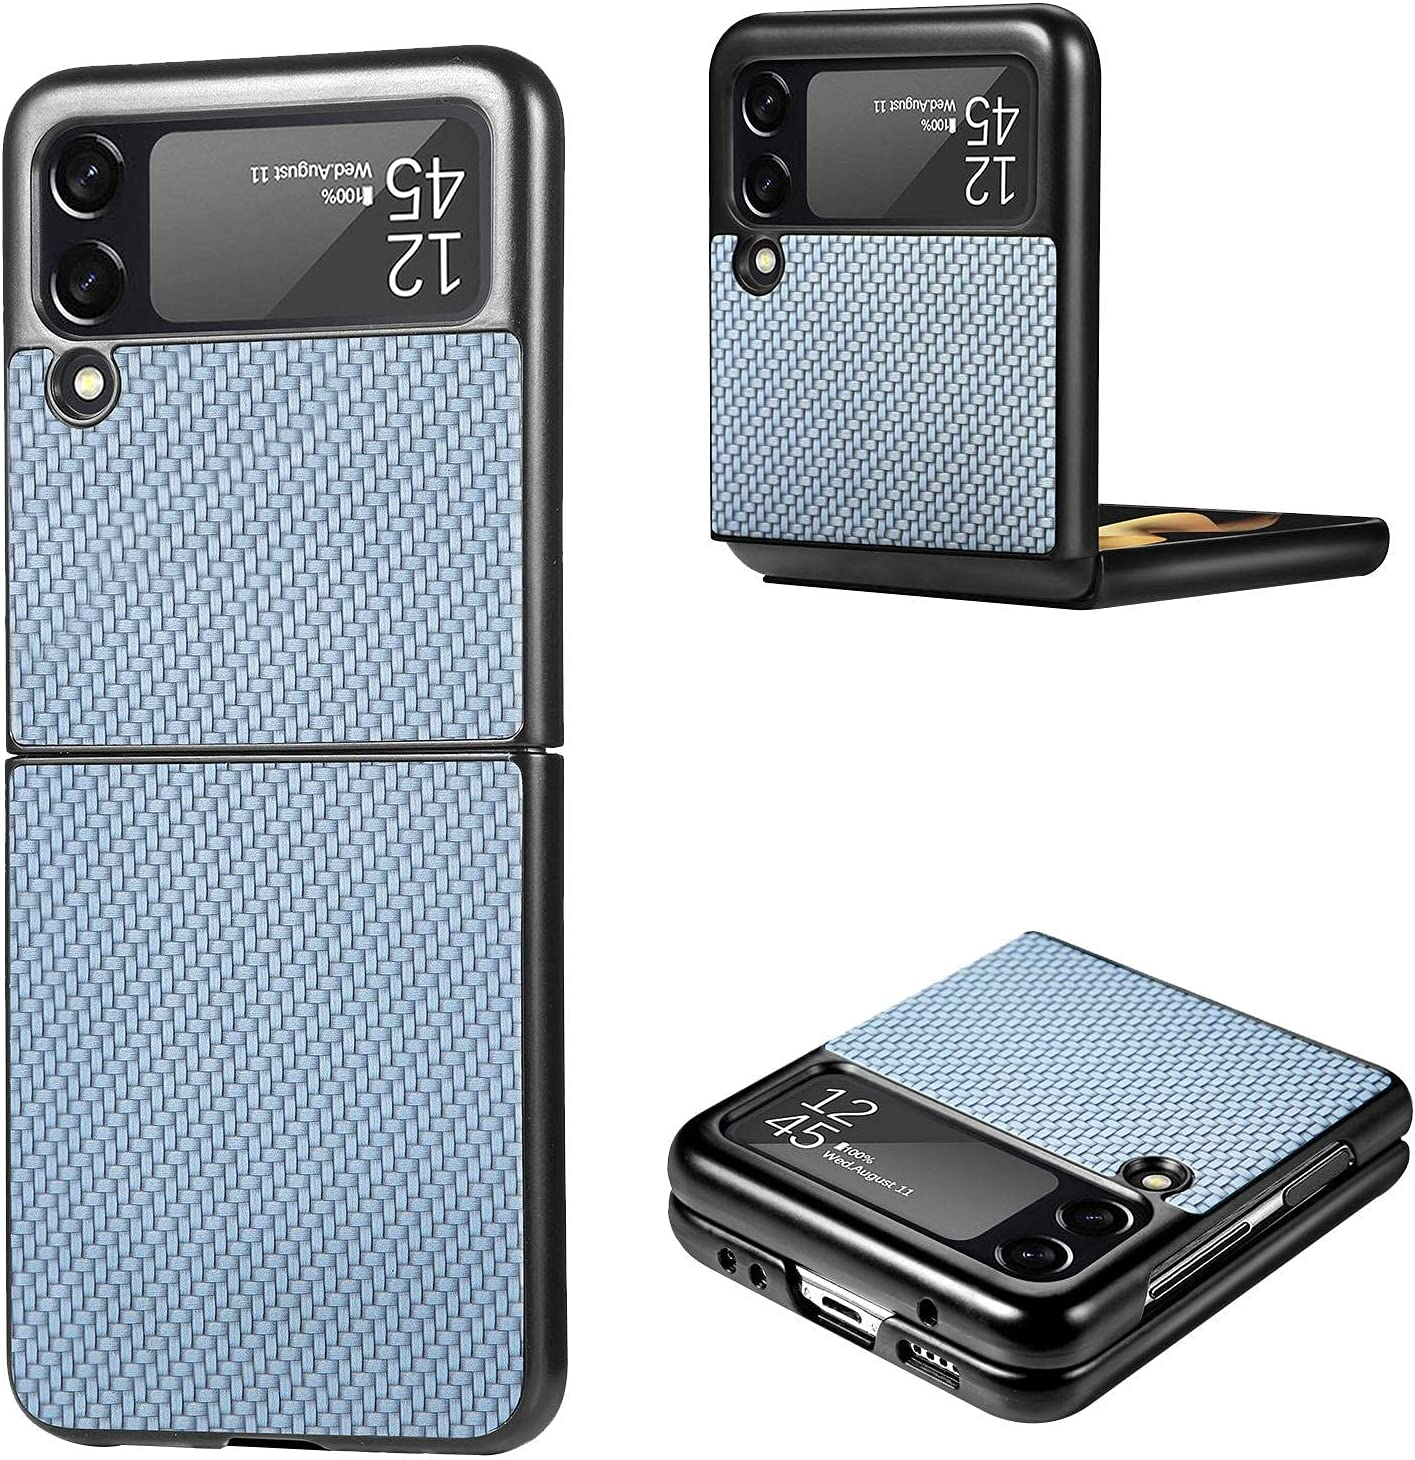 Flip Case for Samsung Galaxy Z Flip 3 5G Smartphone, Ultra Thin Folable PC Mobile Phone Protective Case Compatible with Samsung Galaxy Z Flip3 5G